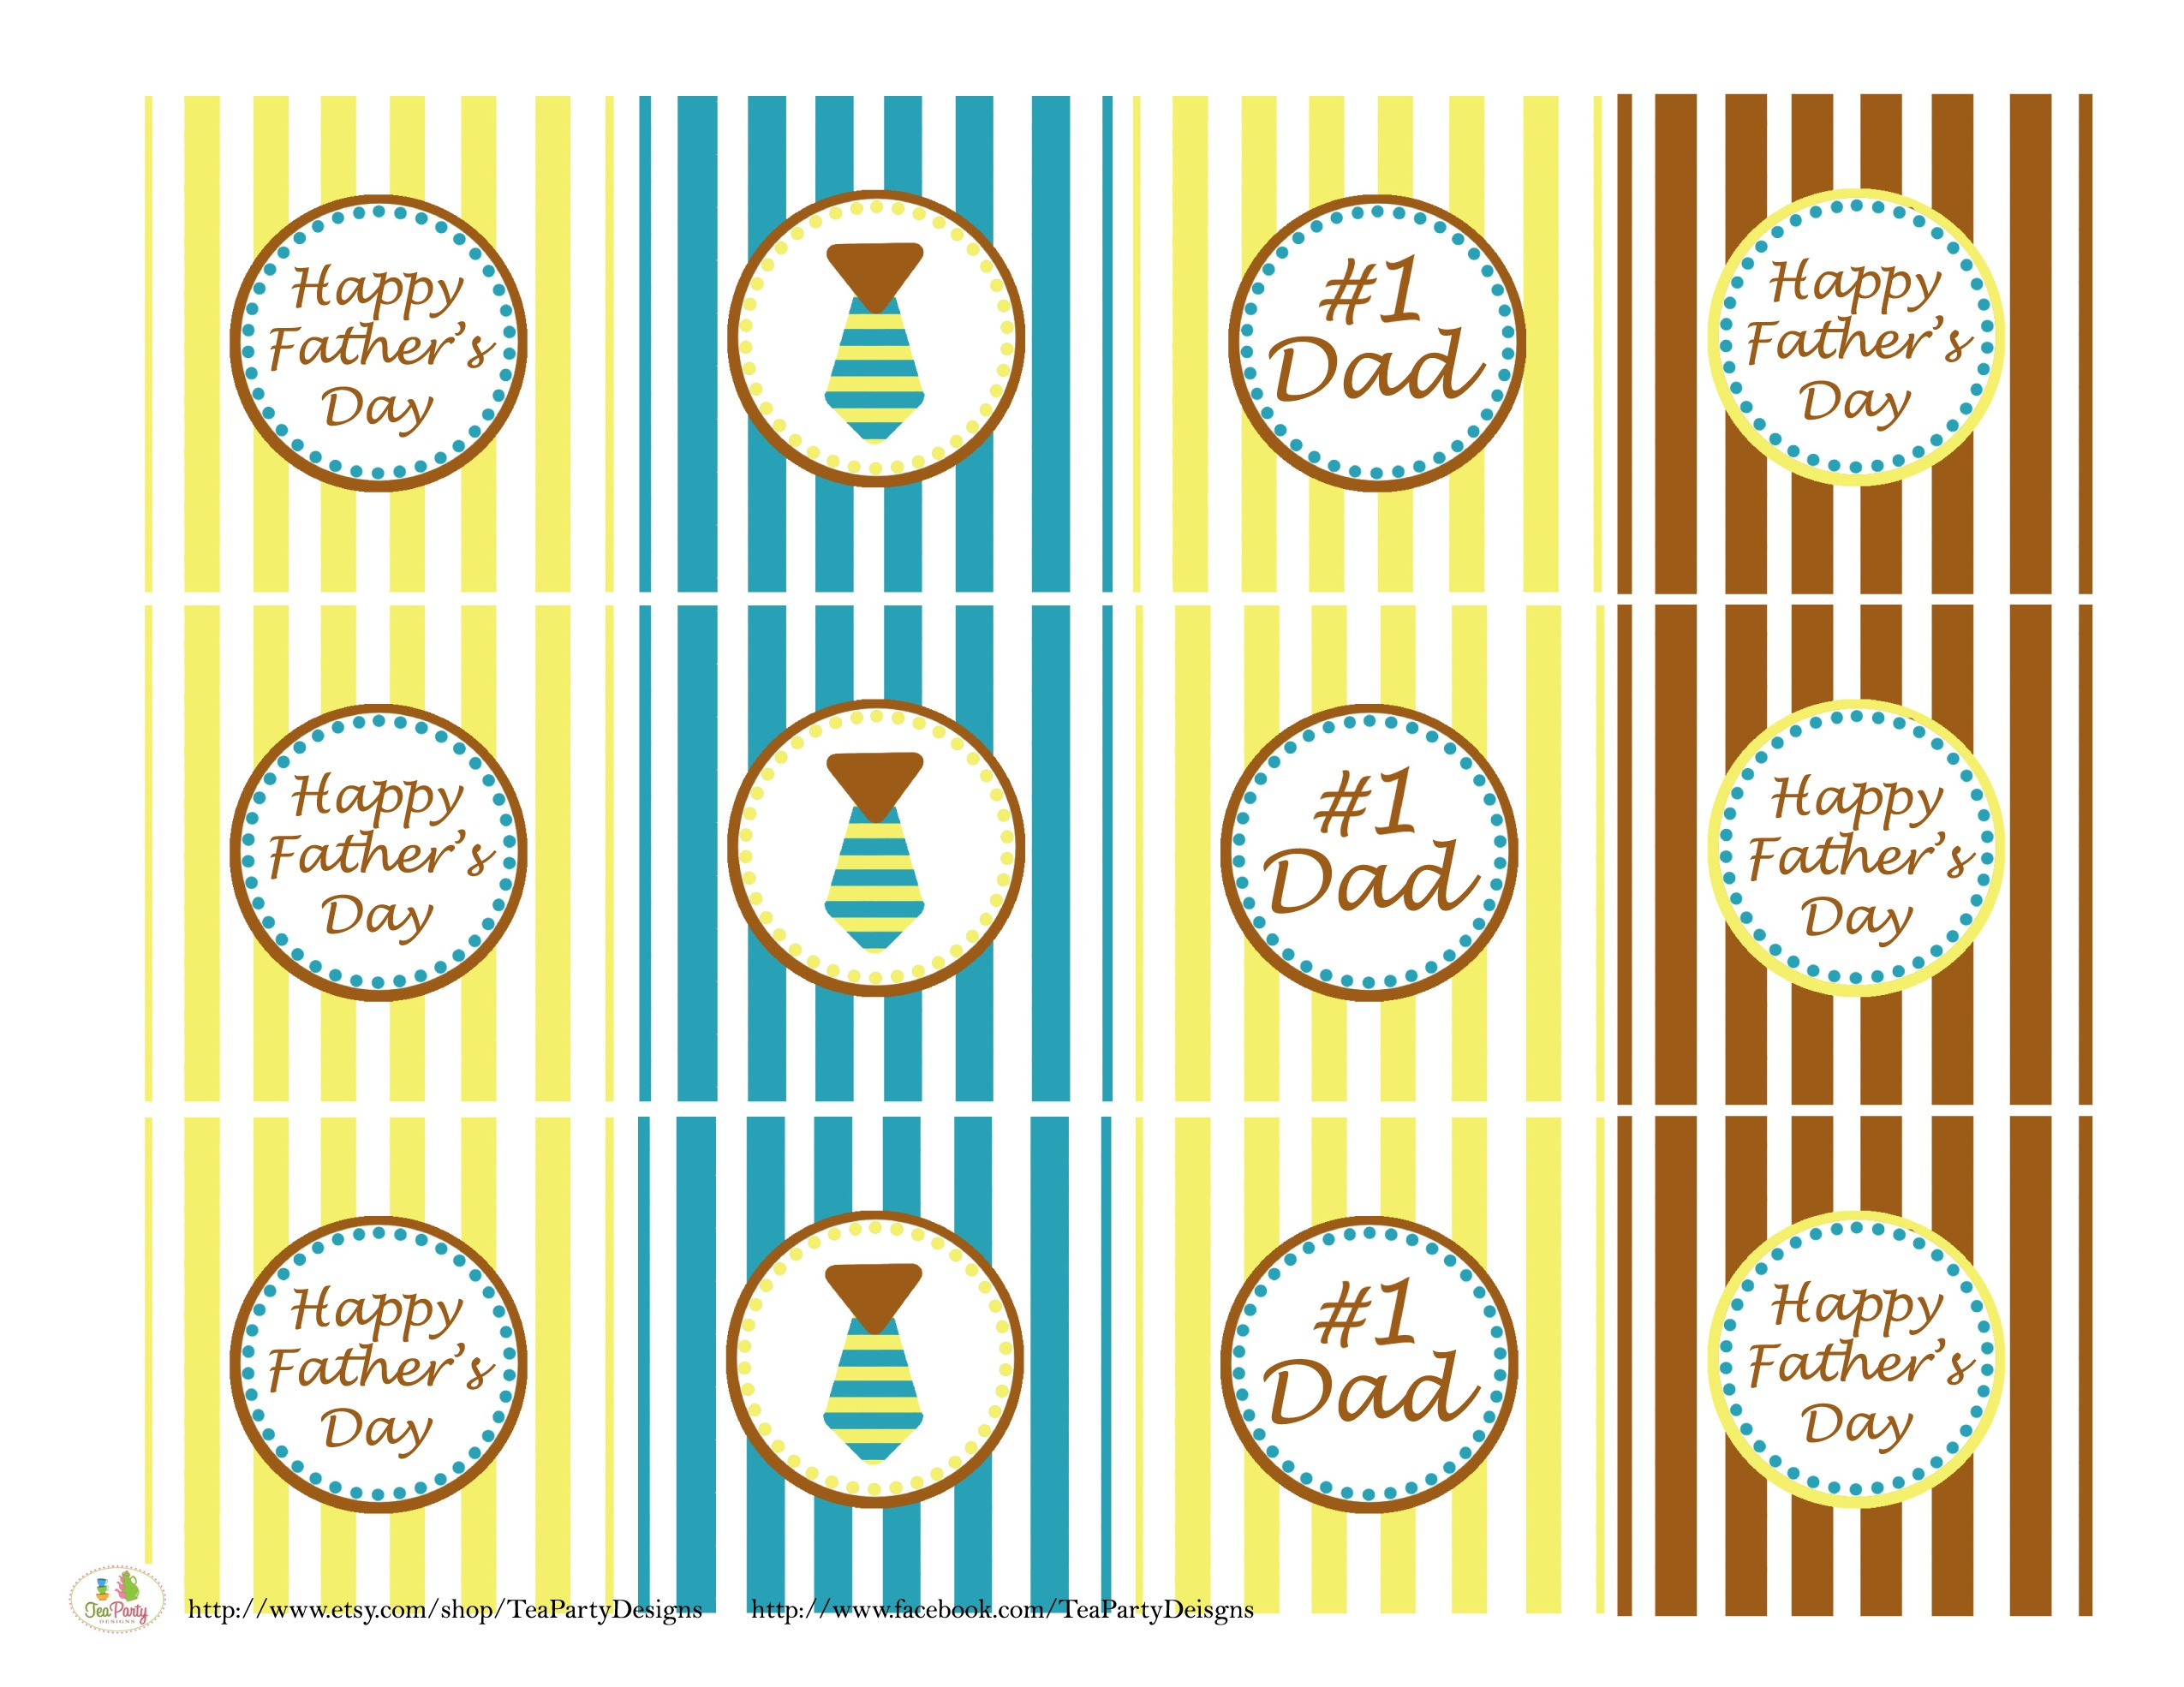 Free Father's Day Printables From Tea Party Designs | Catch My Party - Free Printable Party Circles